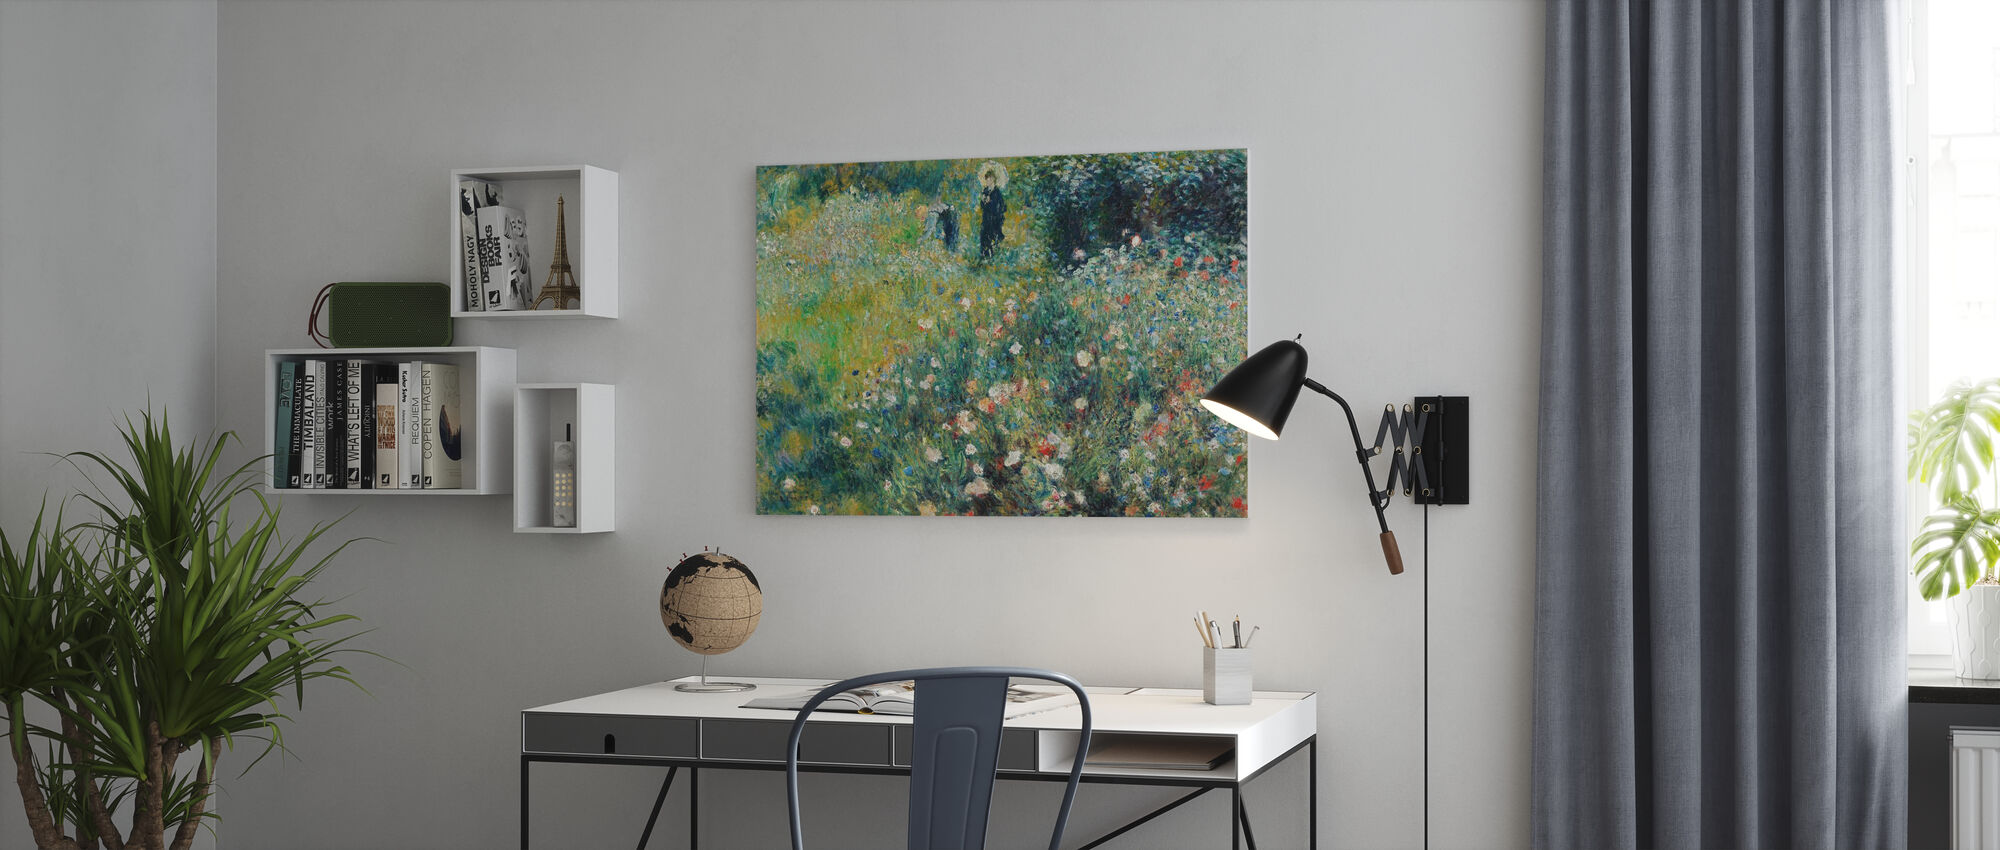 Woman with a Parasol in a Garden - Canvas print - Office